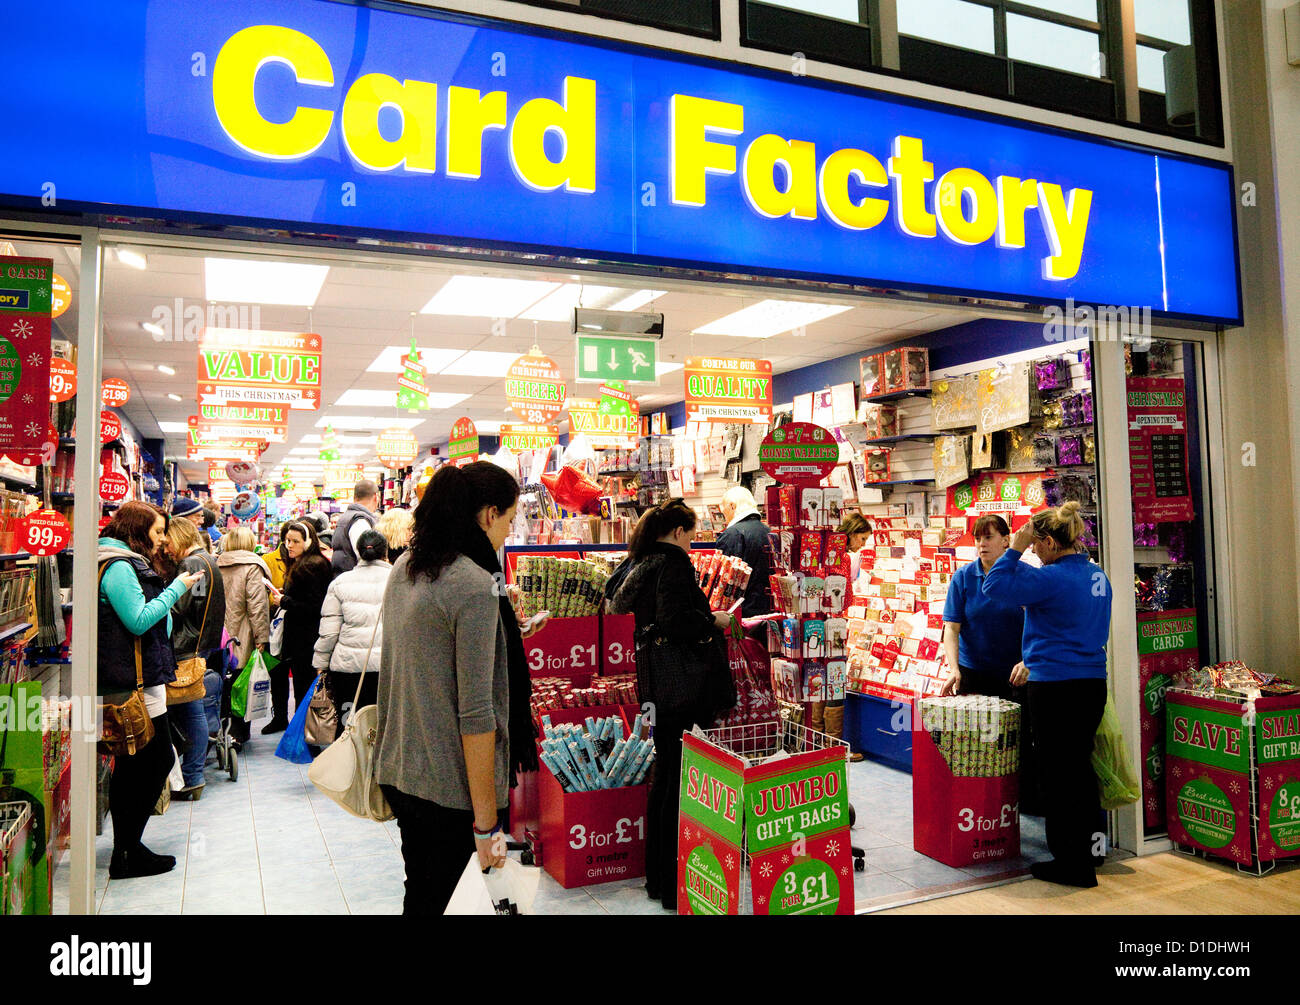 e14933a1f865 The Card factory card shop store